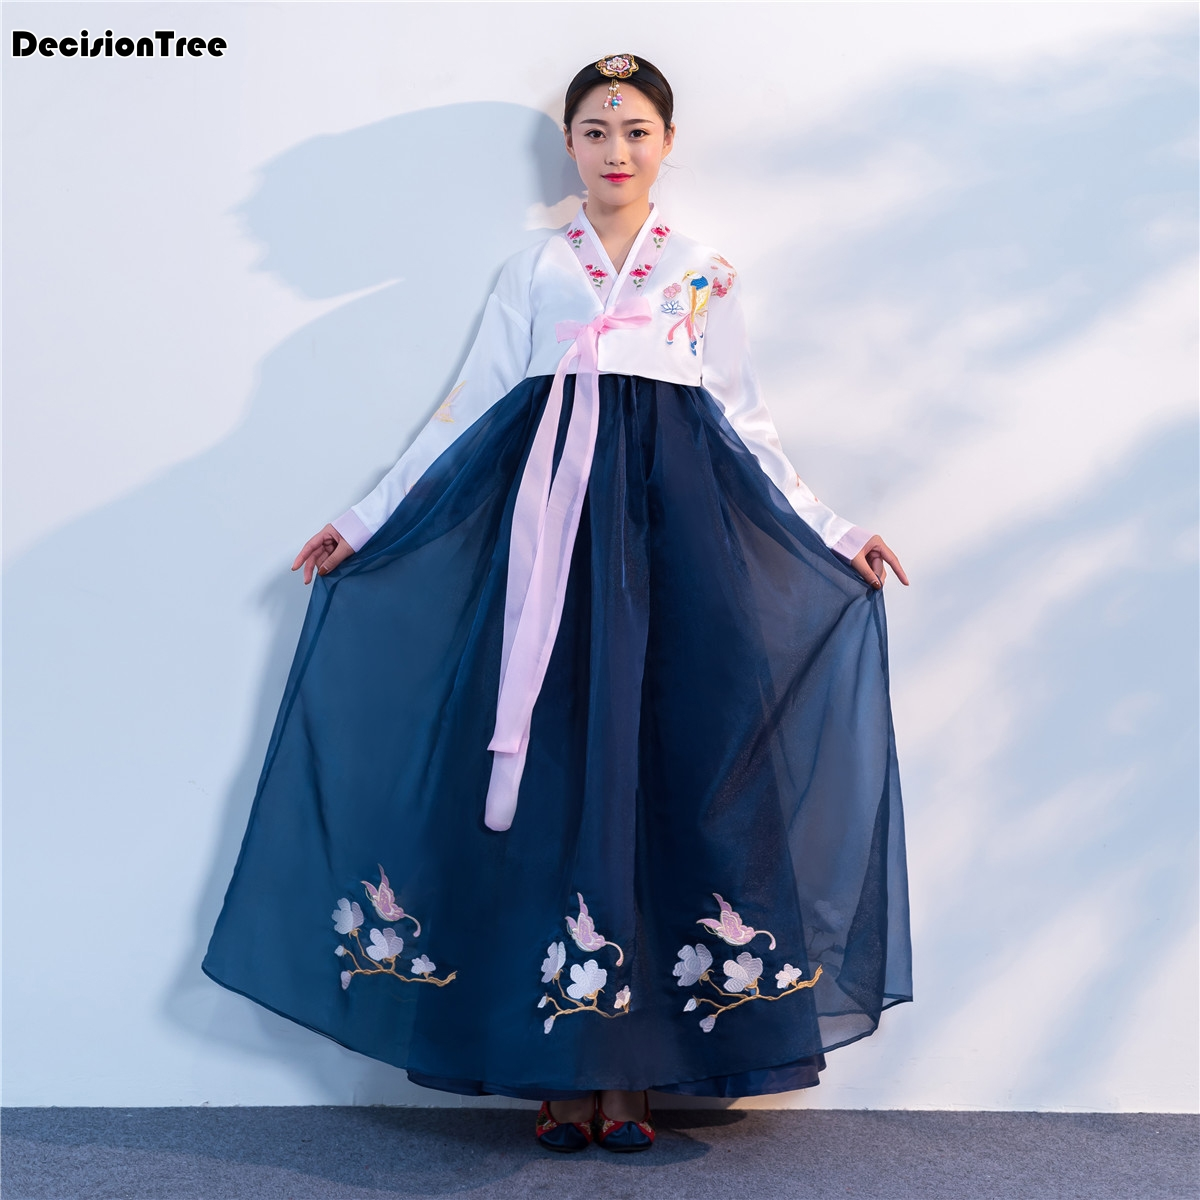 2019 National Stage Outfit Minority Costume Hanbok Korean Traditional Embroidery Costume Hanbok Korean Traditional Dress